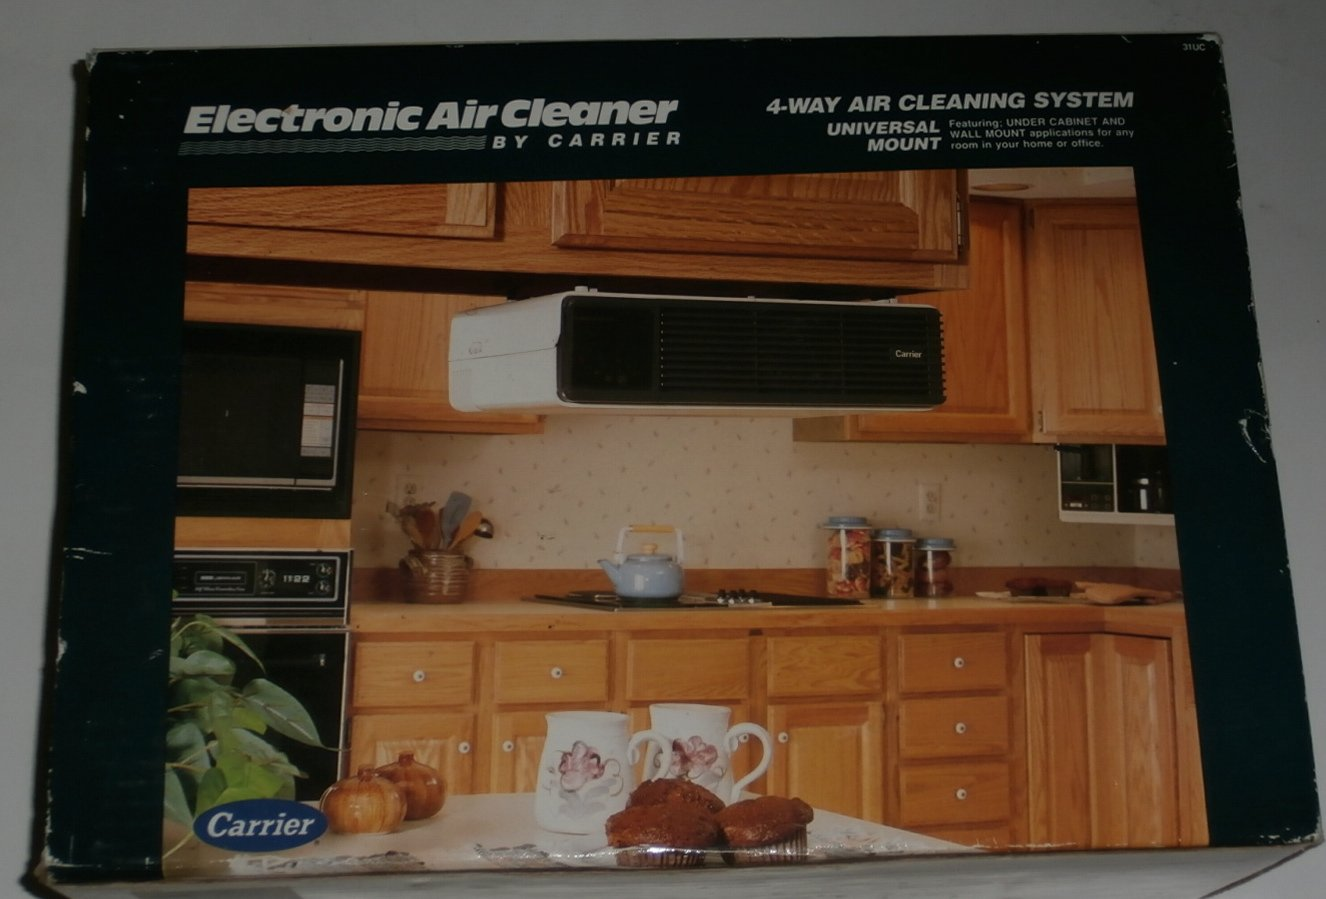 Electronic 4-Way Air Cleaning System Air Cleaner